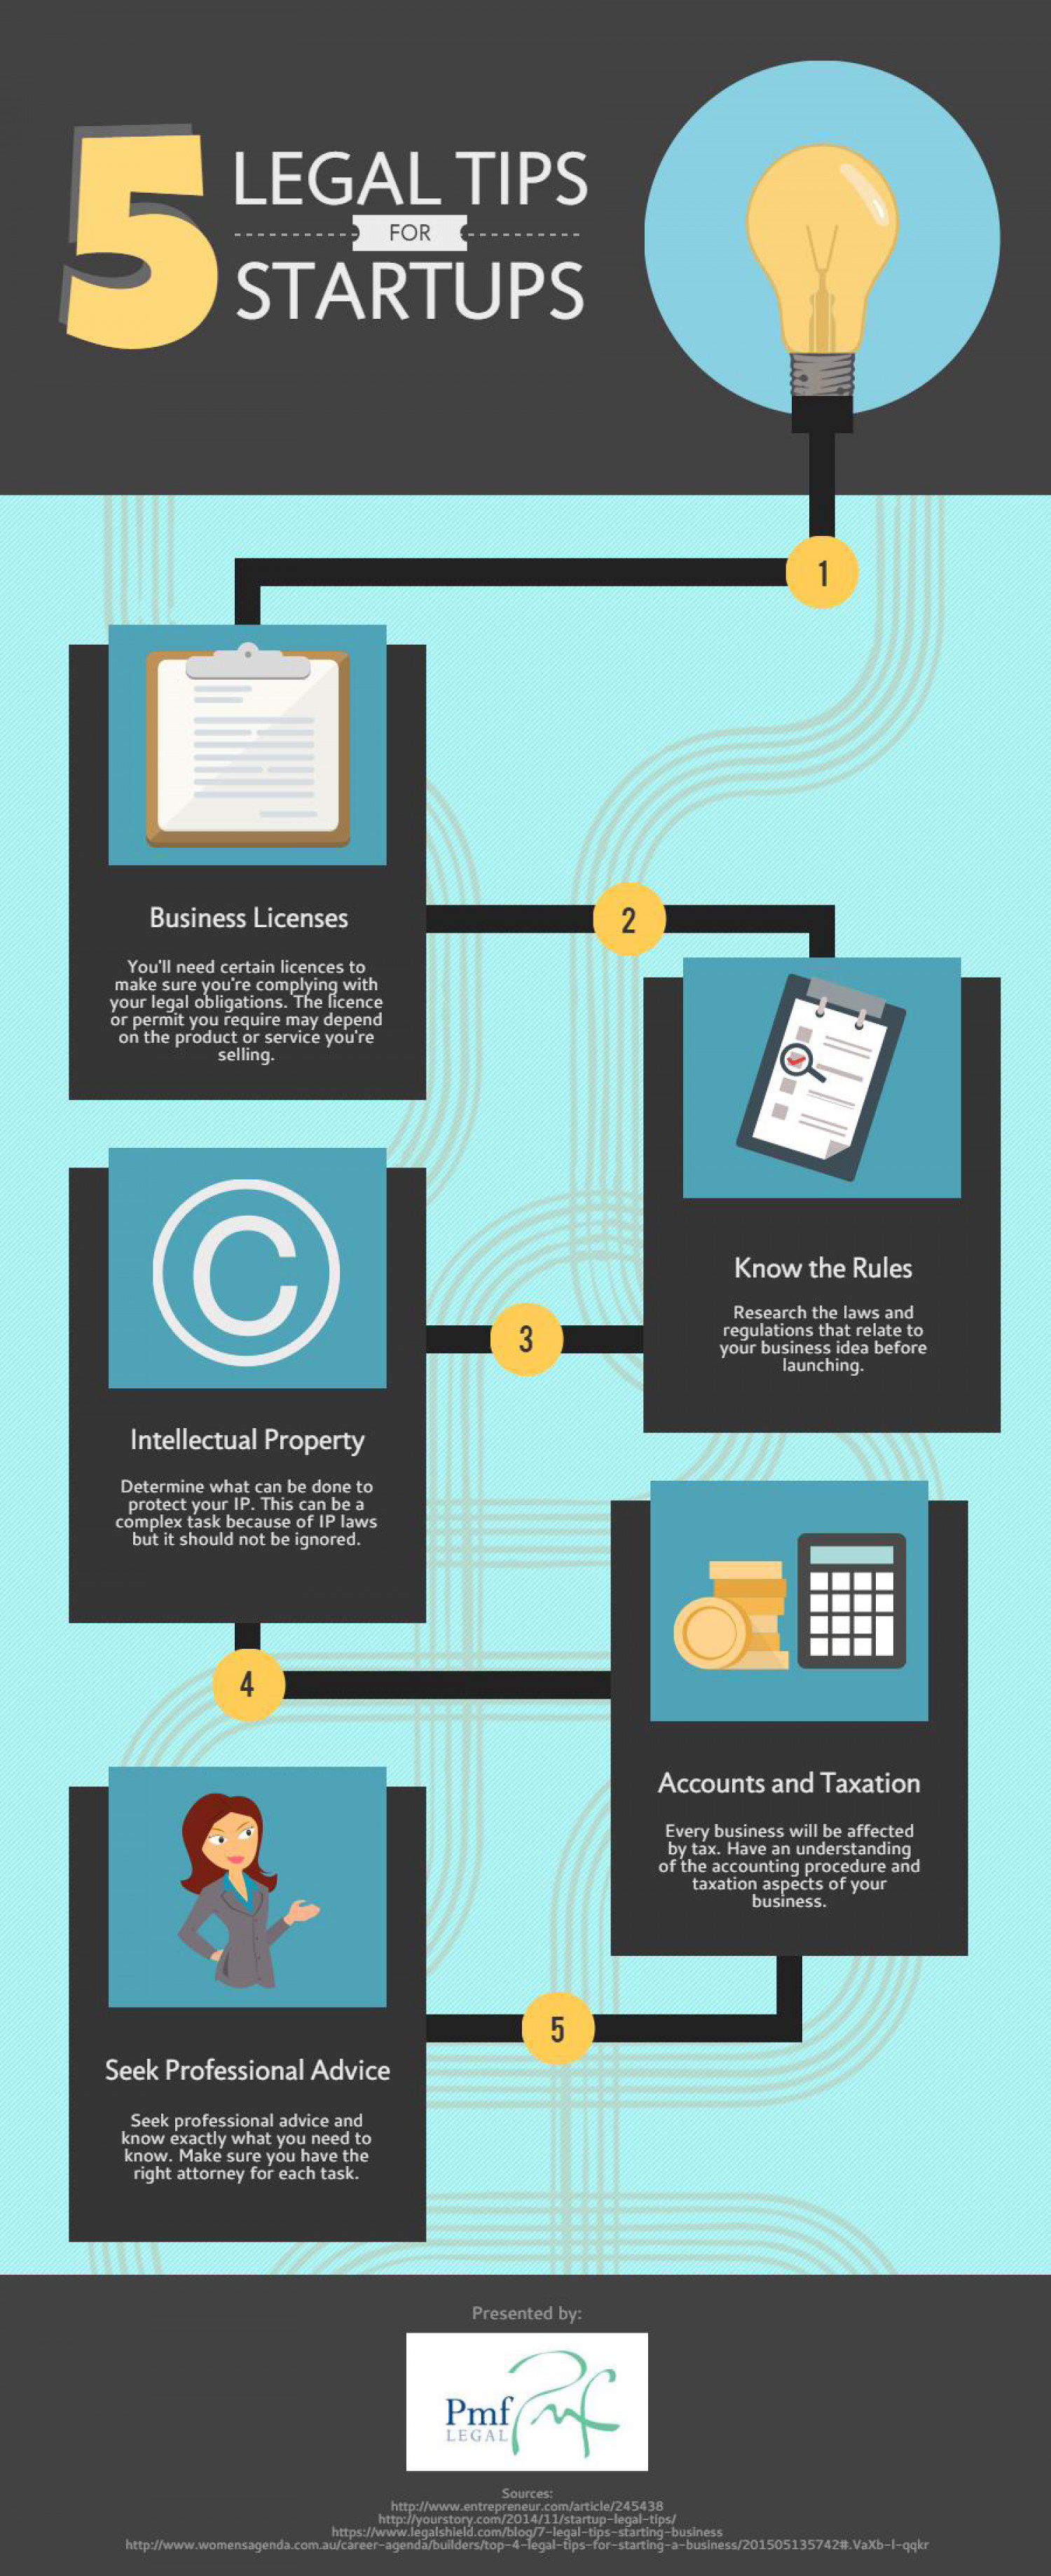 5 Legal Tips For Startups Infographic